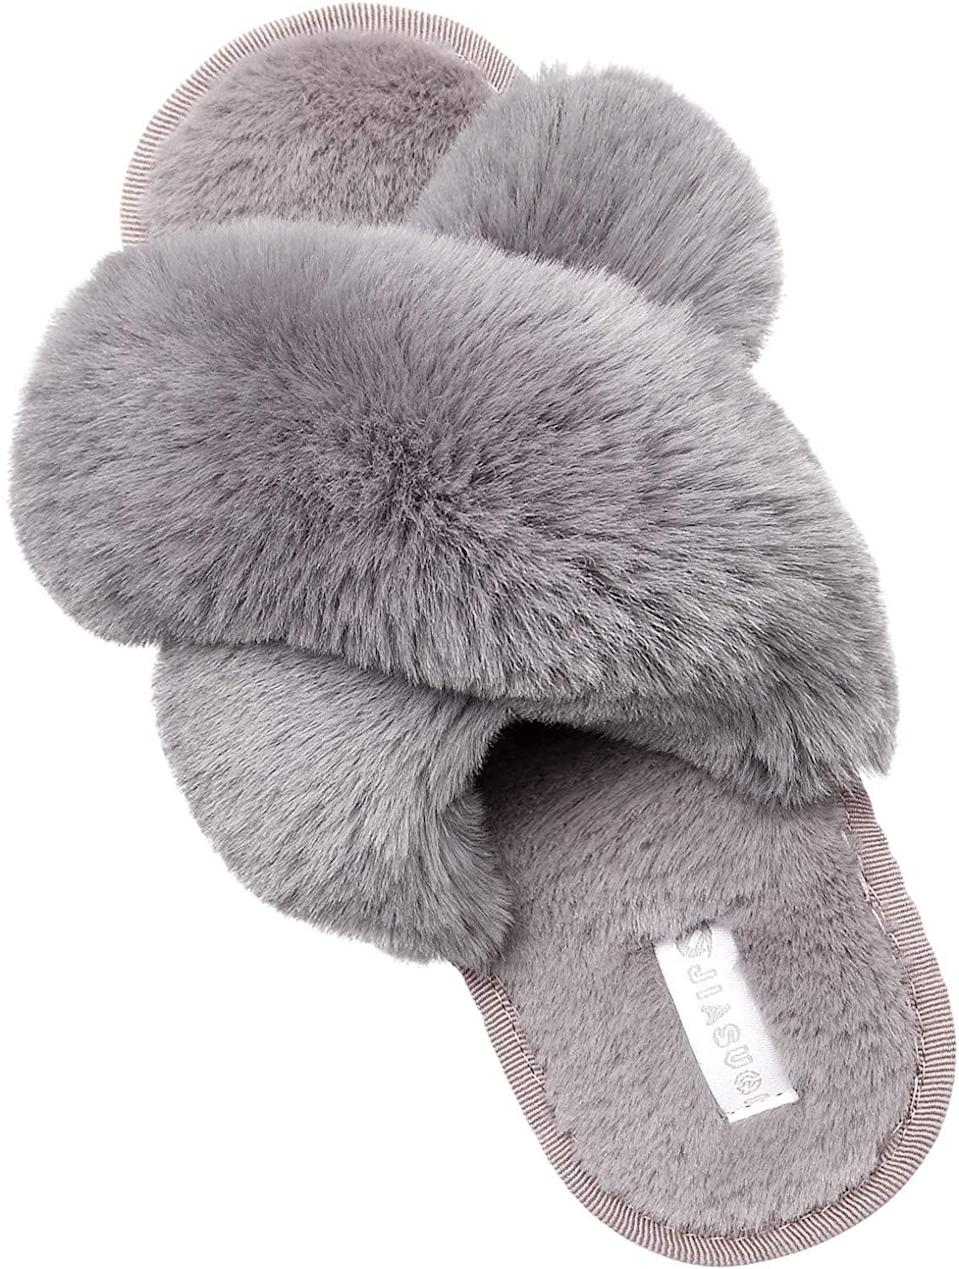 <p>These <span>Jiasuqi Cross Open Toe Fuzzy Fluffy House Slippers</span> ($22) are so cozy and comfortable yet look so classy and bougie.</p>